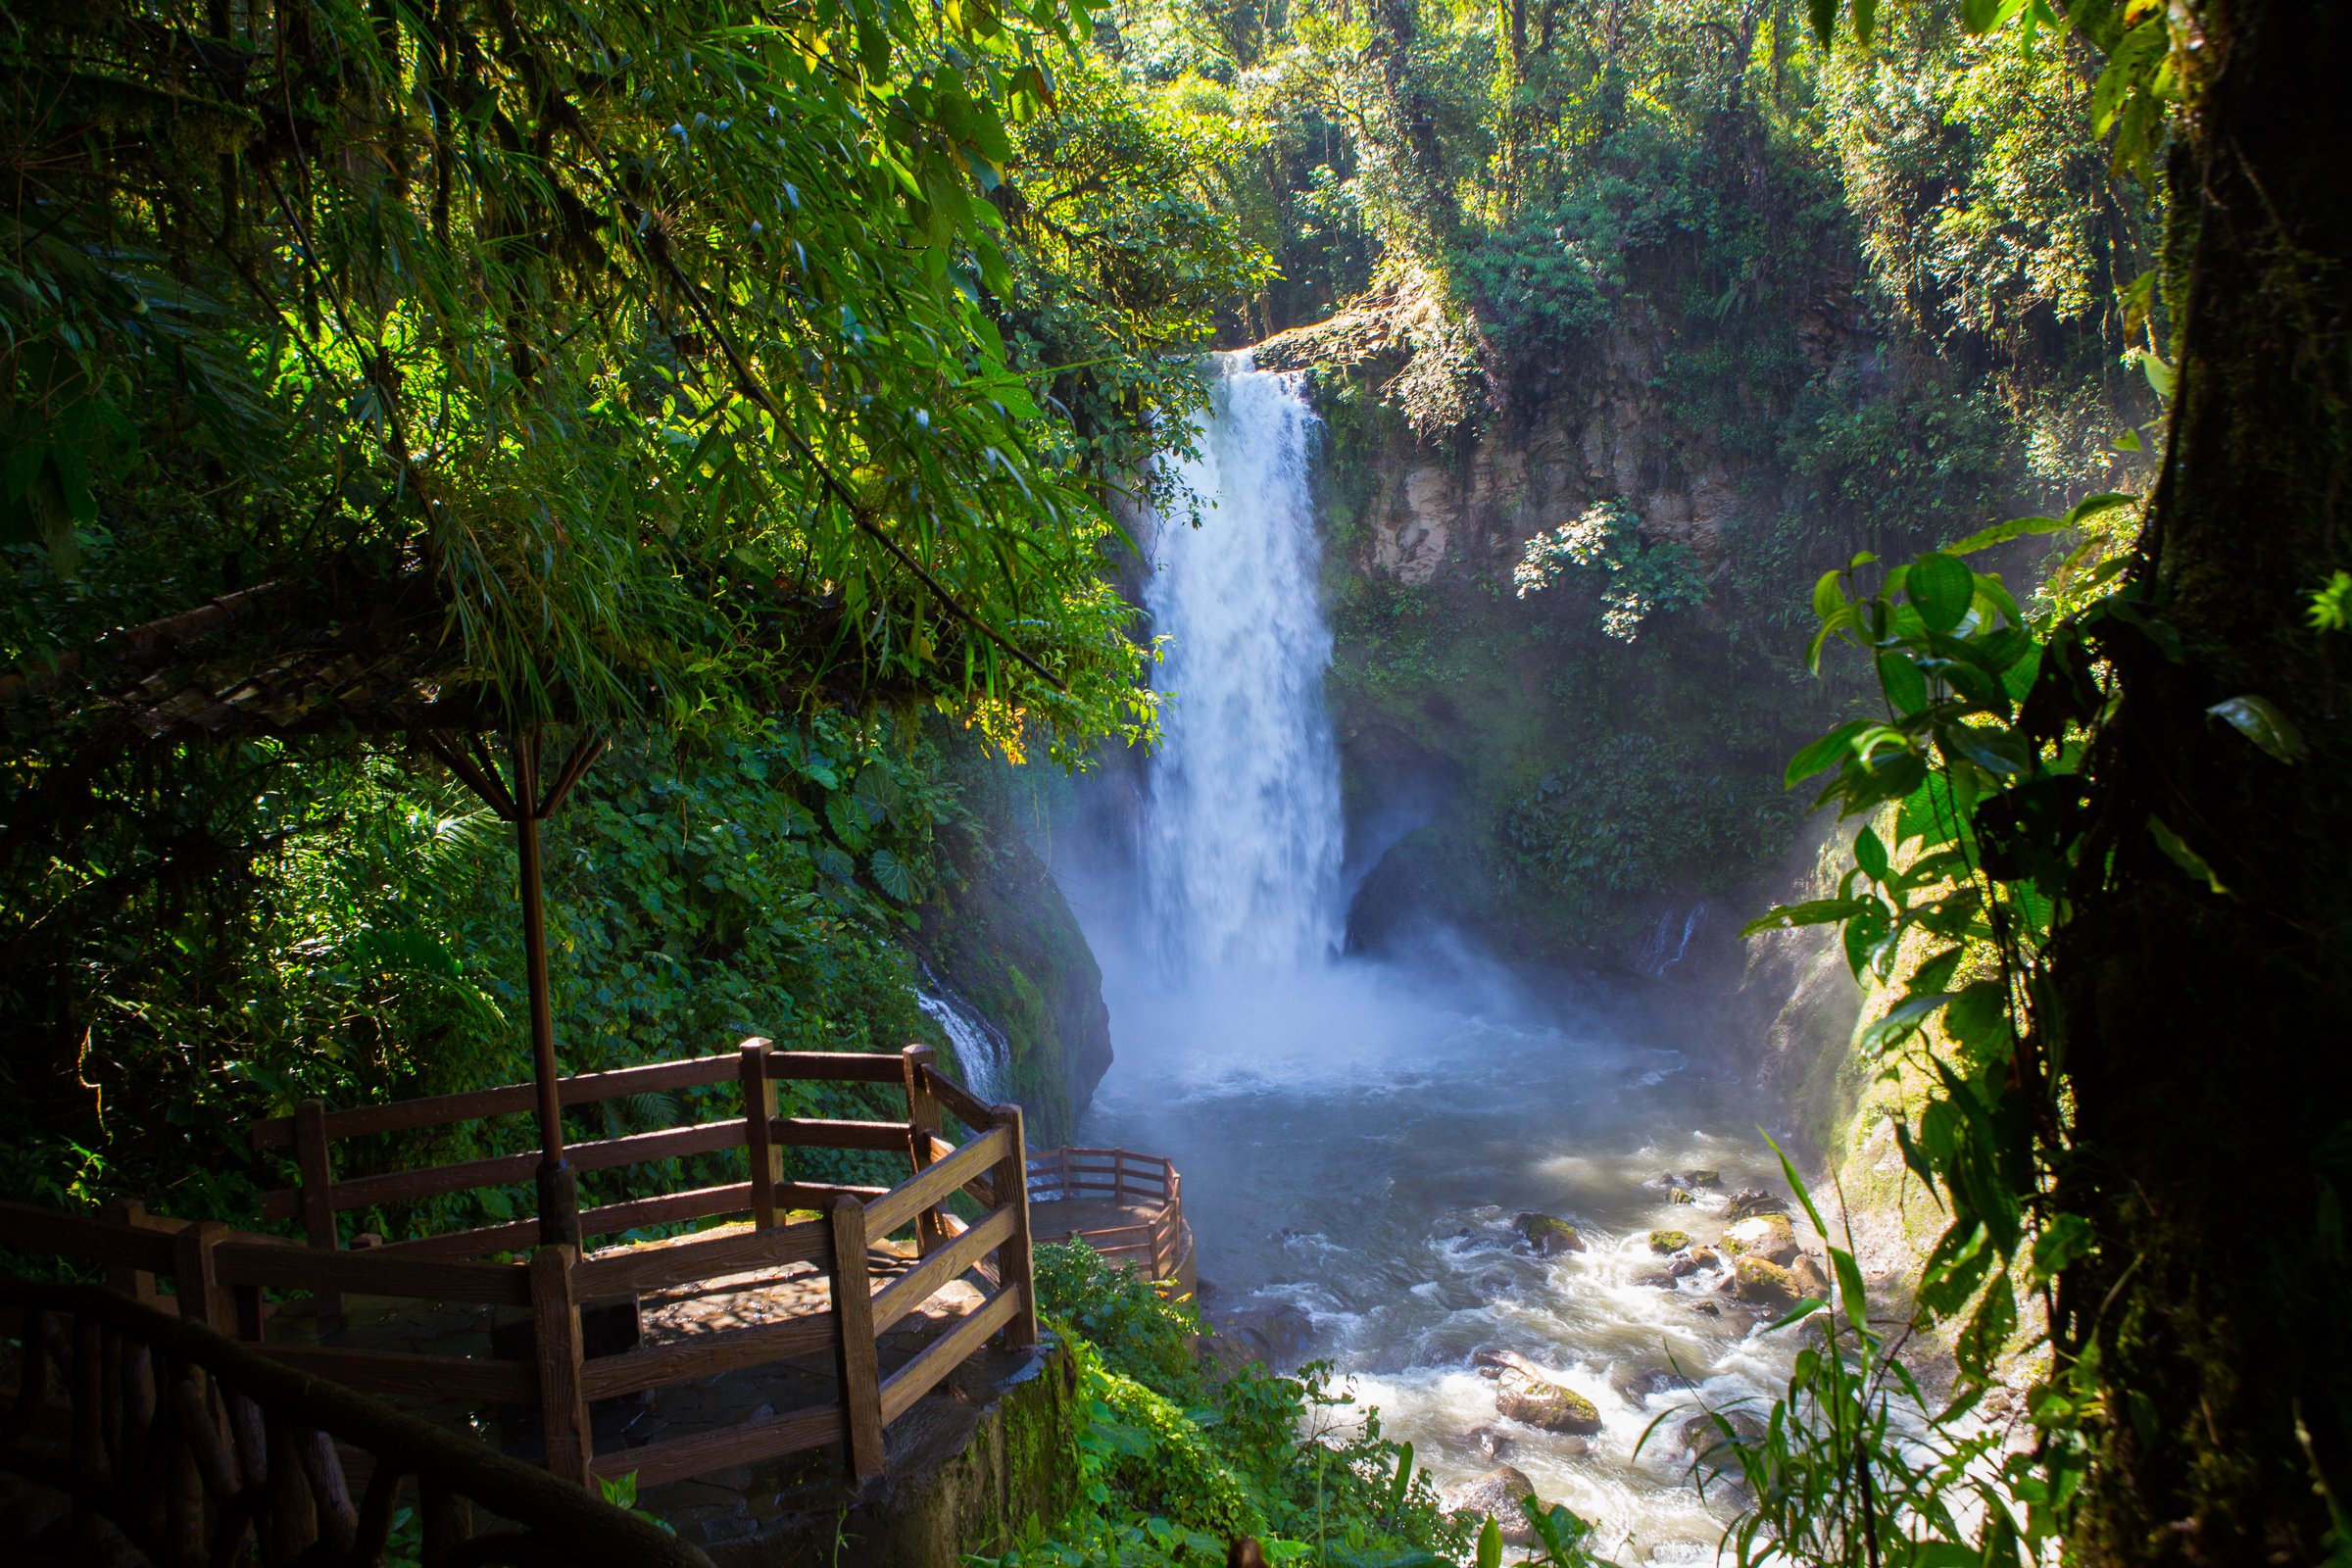 Magia Blanca:One of the many waterfalls along our rainforest hike.